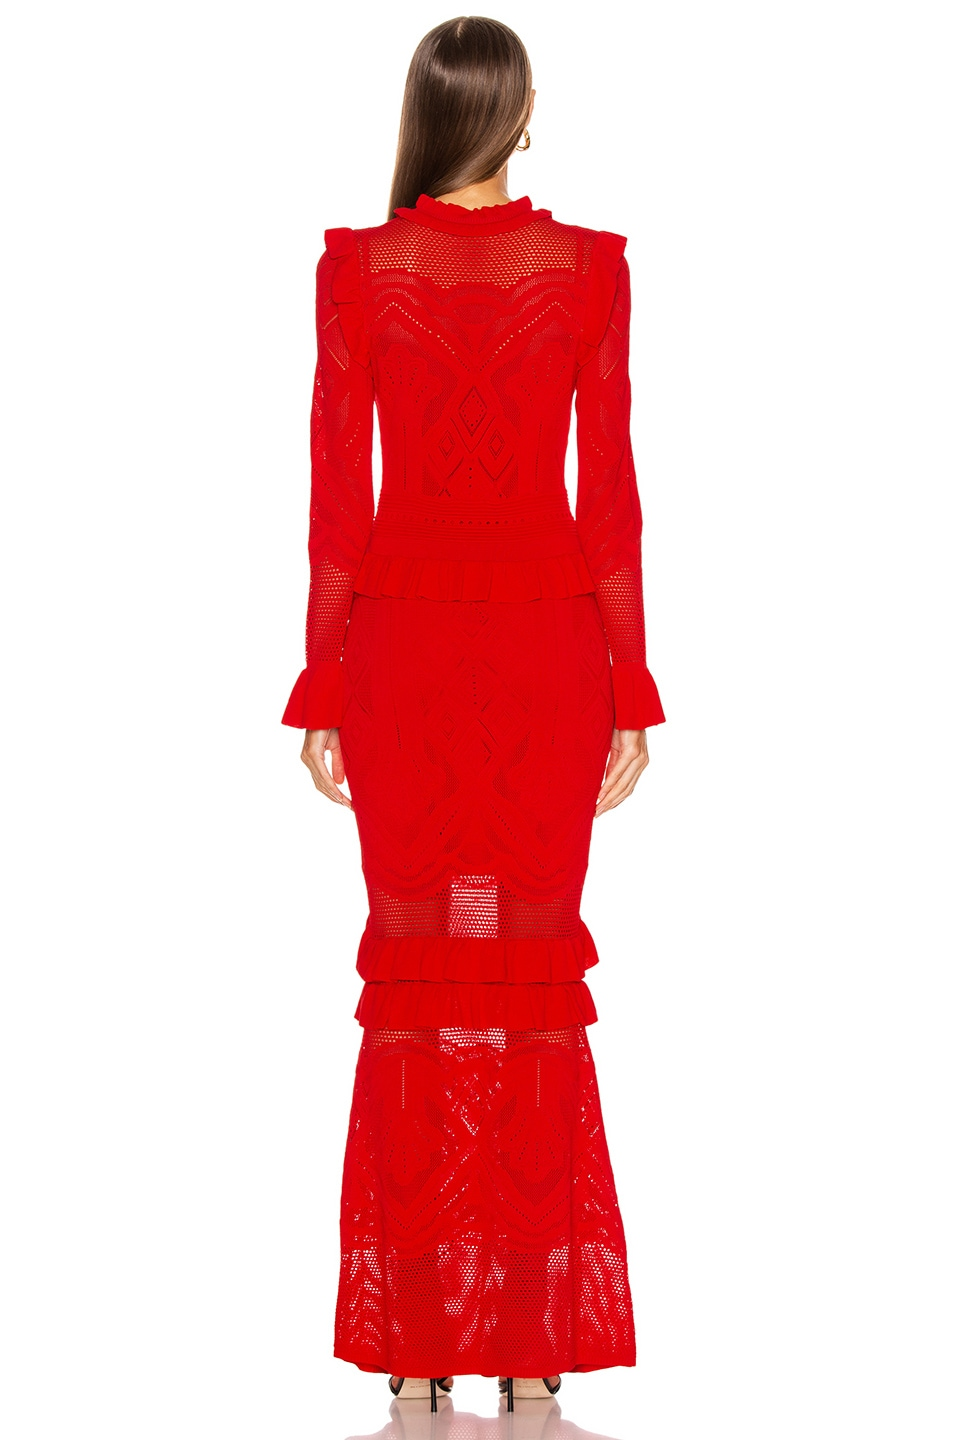 Image 3 of Alexis Ceecee Dress in Red